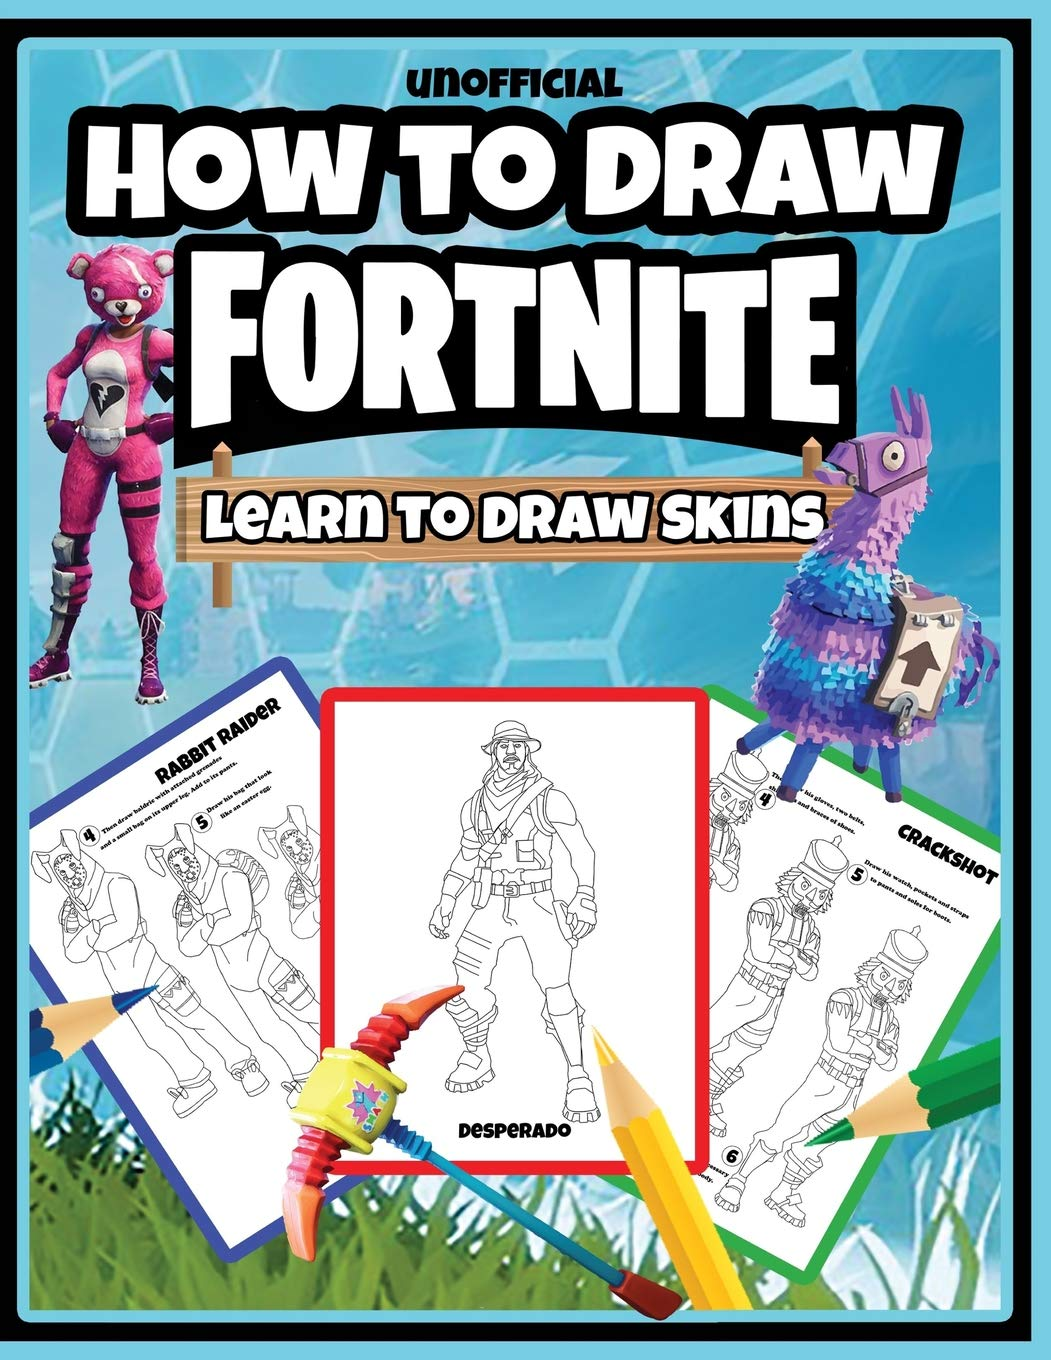 How To Draw Fortnite Learn To Draw Skins Unofficial Osie